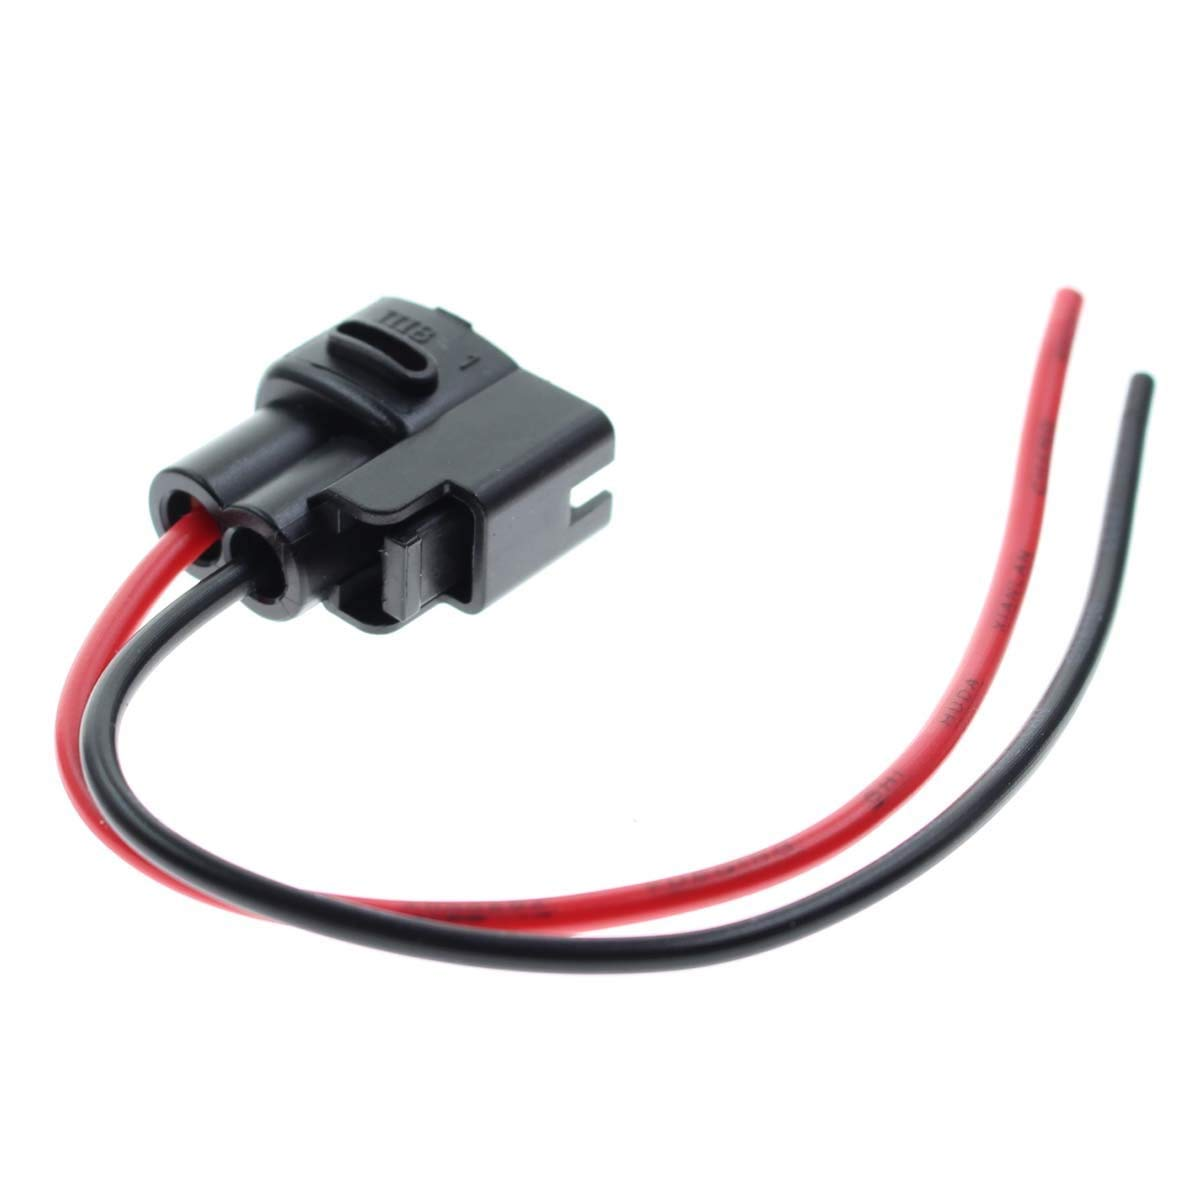 Motoall Ignition Coil Connector Plug Wire Harness Pigtail Wiring Mazda Rx7 Loom 2 Female For 90980 11246 Toyota Lexus